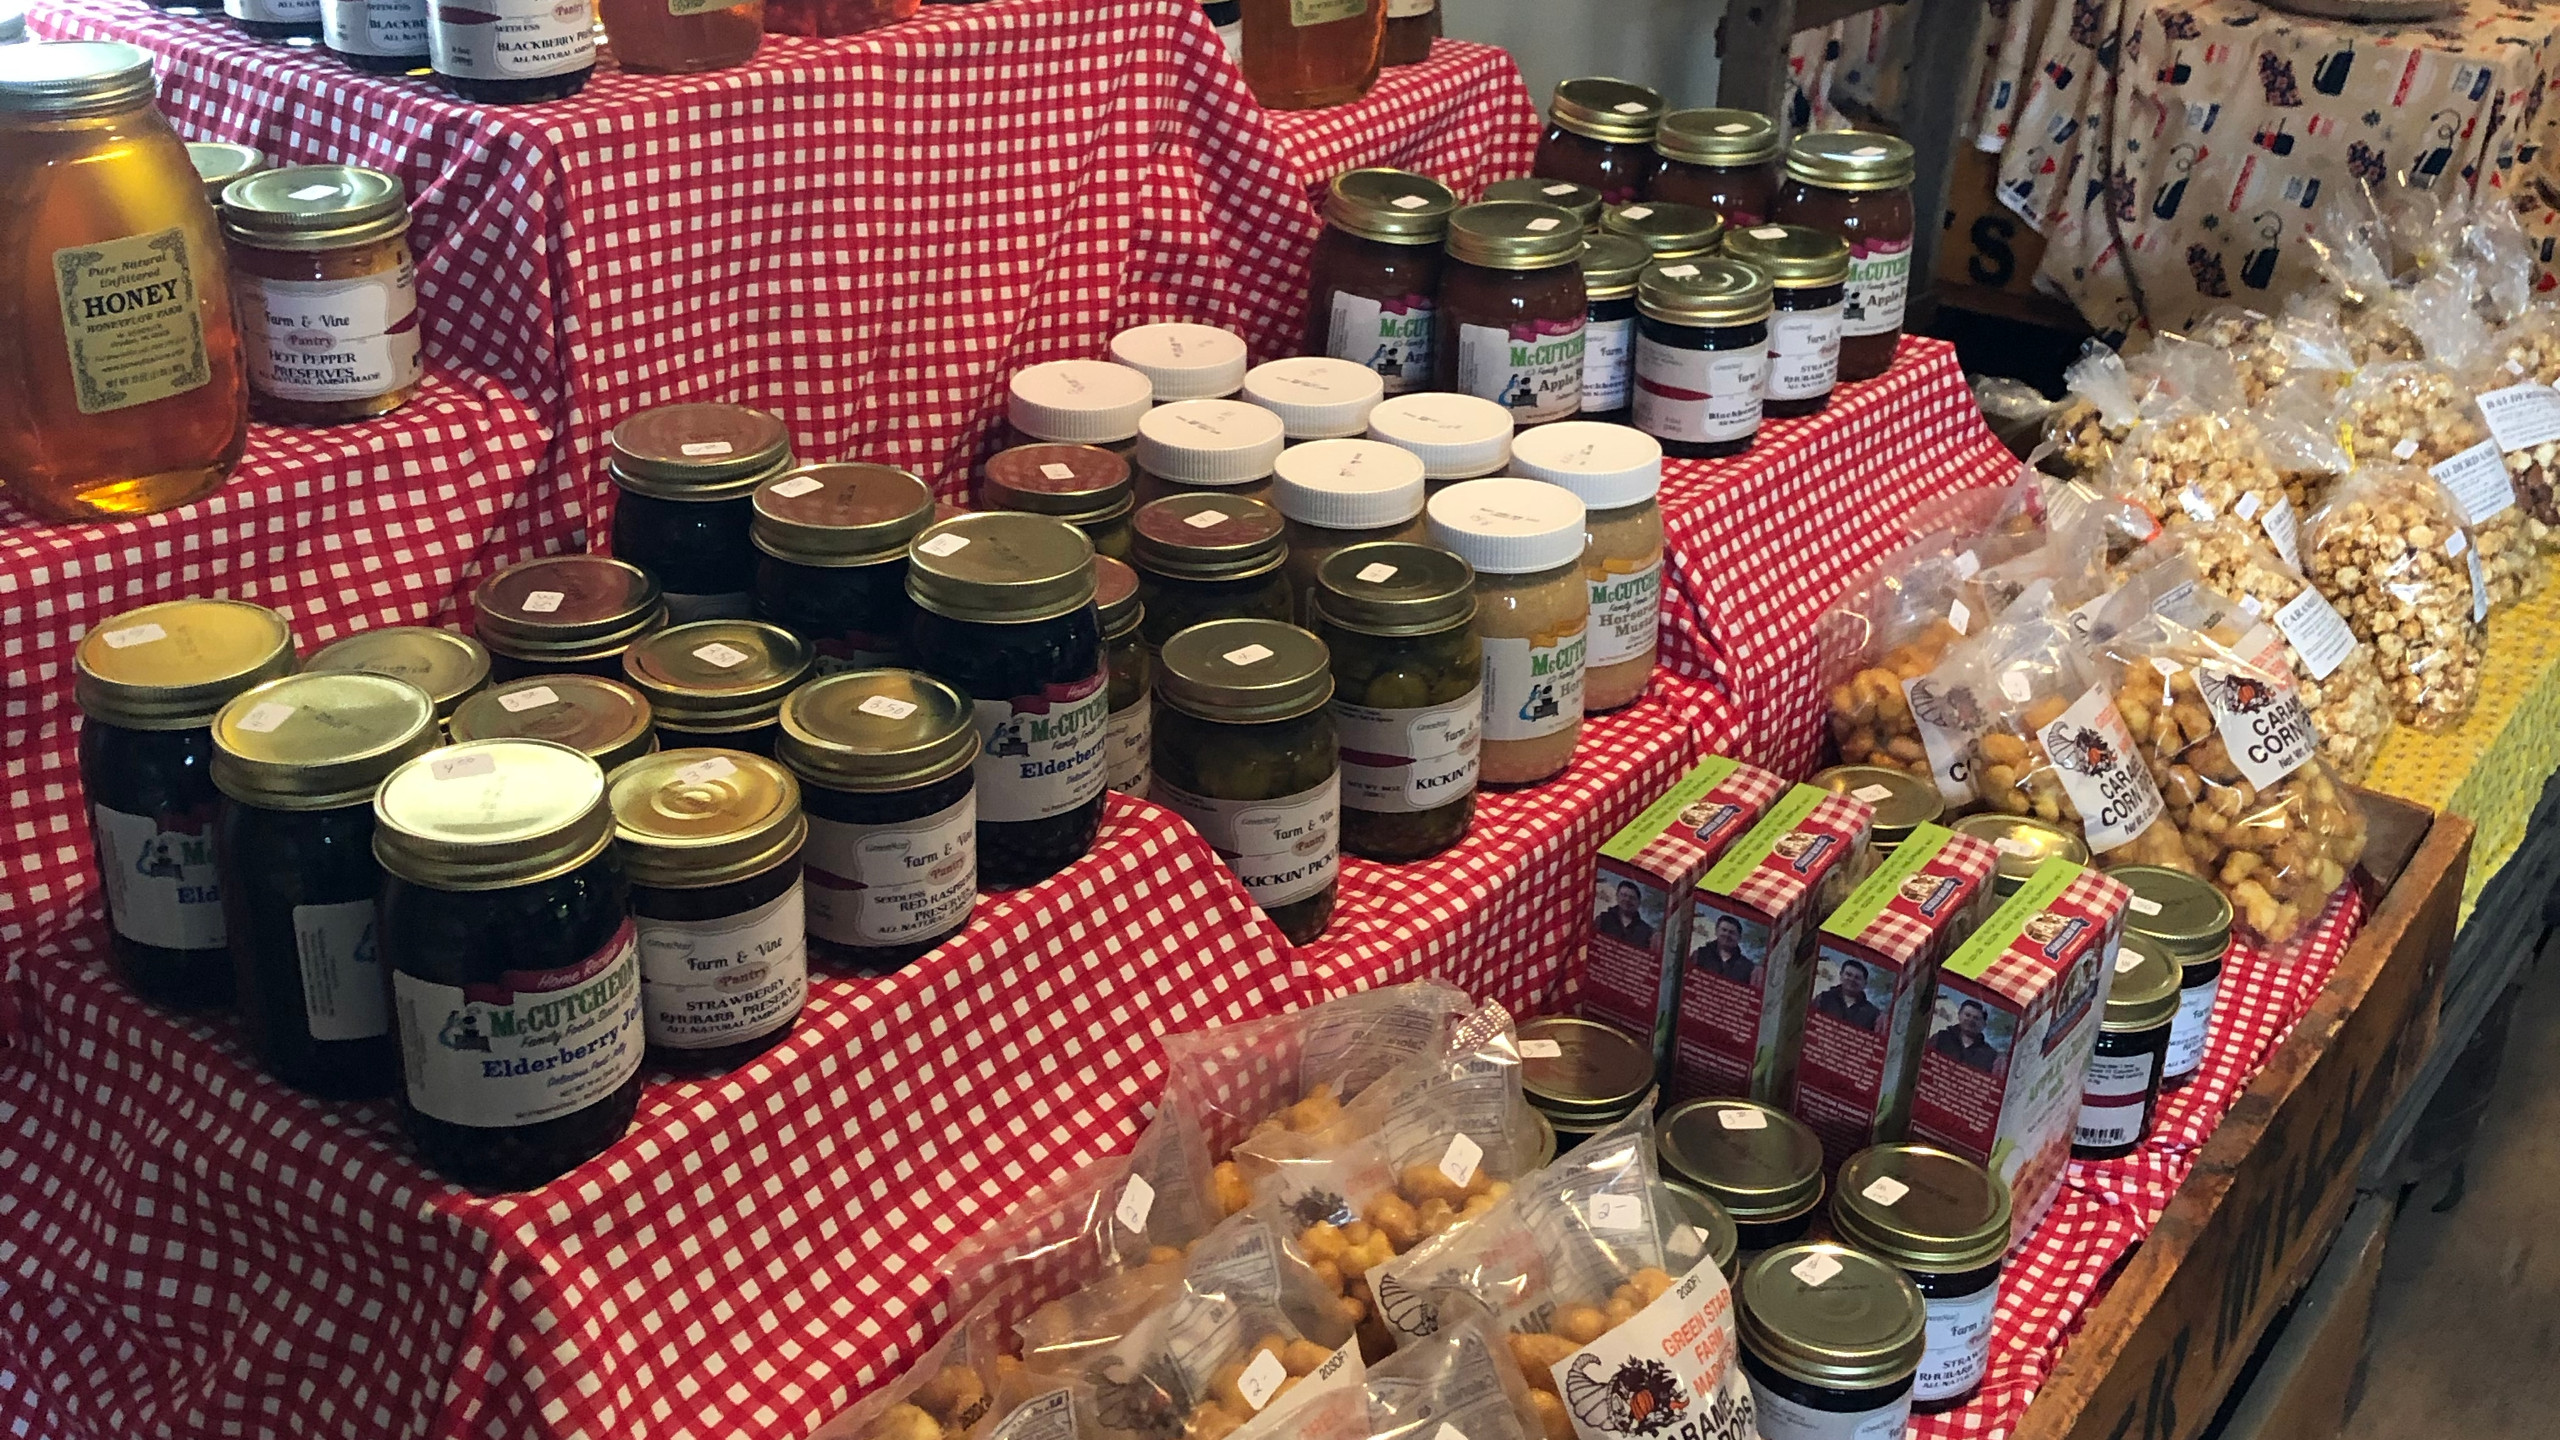 delicious jams and treats